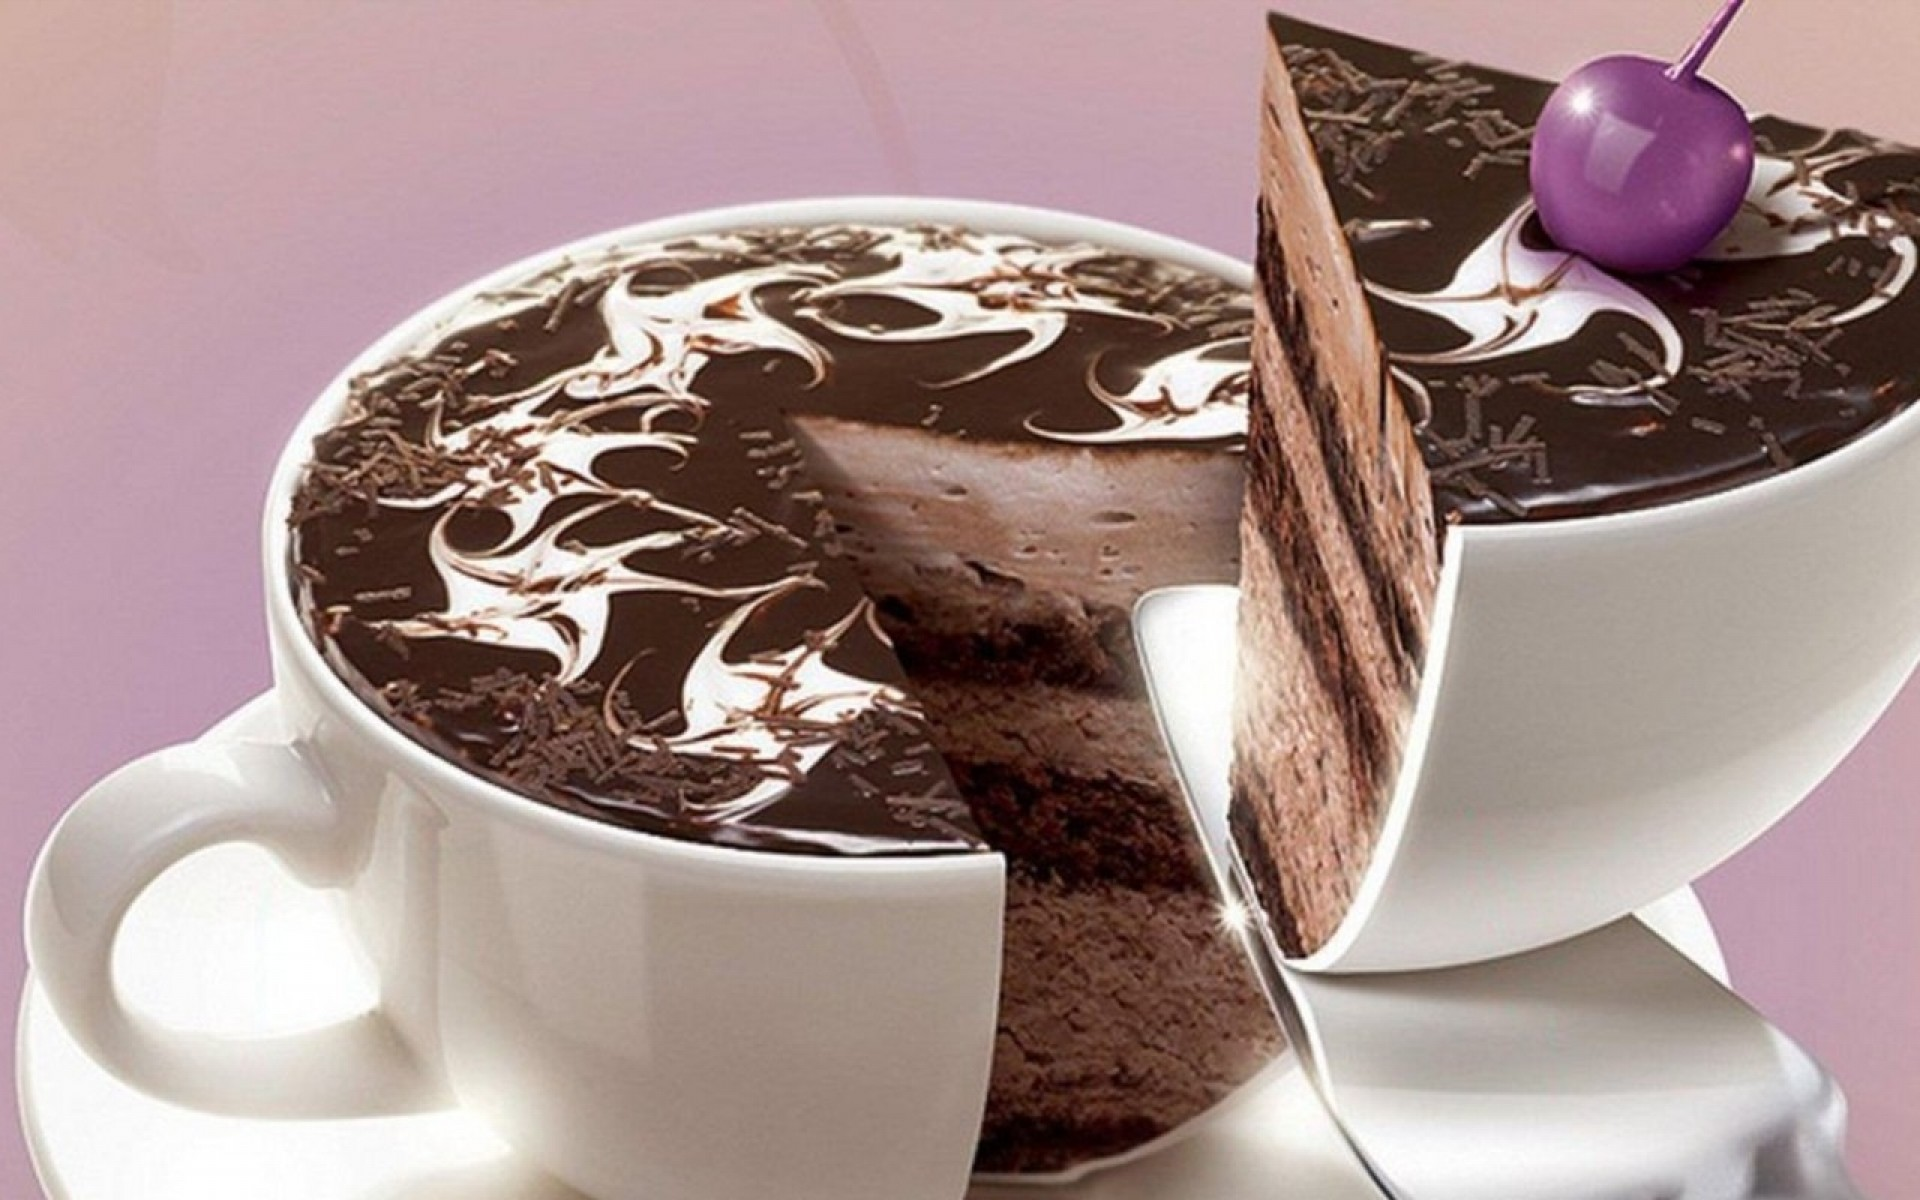 Home Food and Drink Chocolate Birthday Cake Desktop Wallpaper 1920x1200